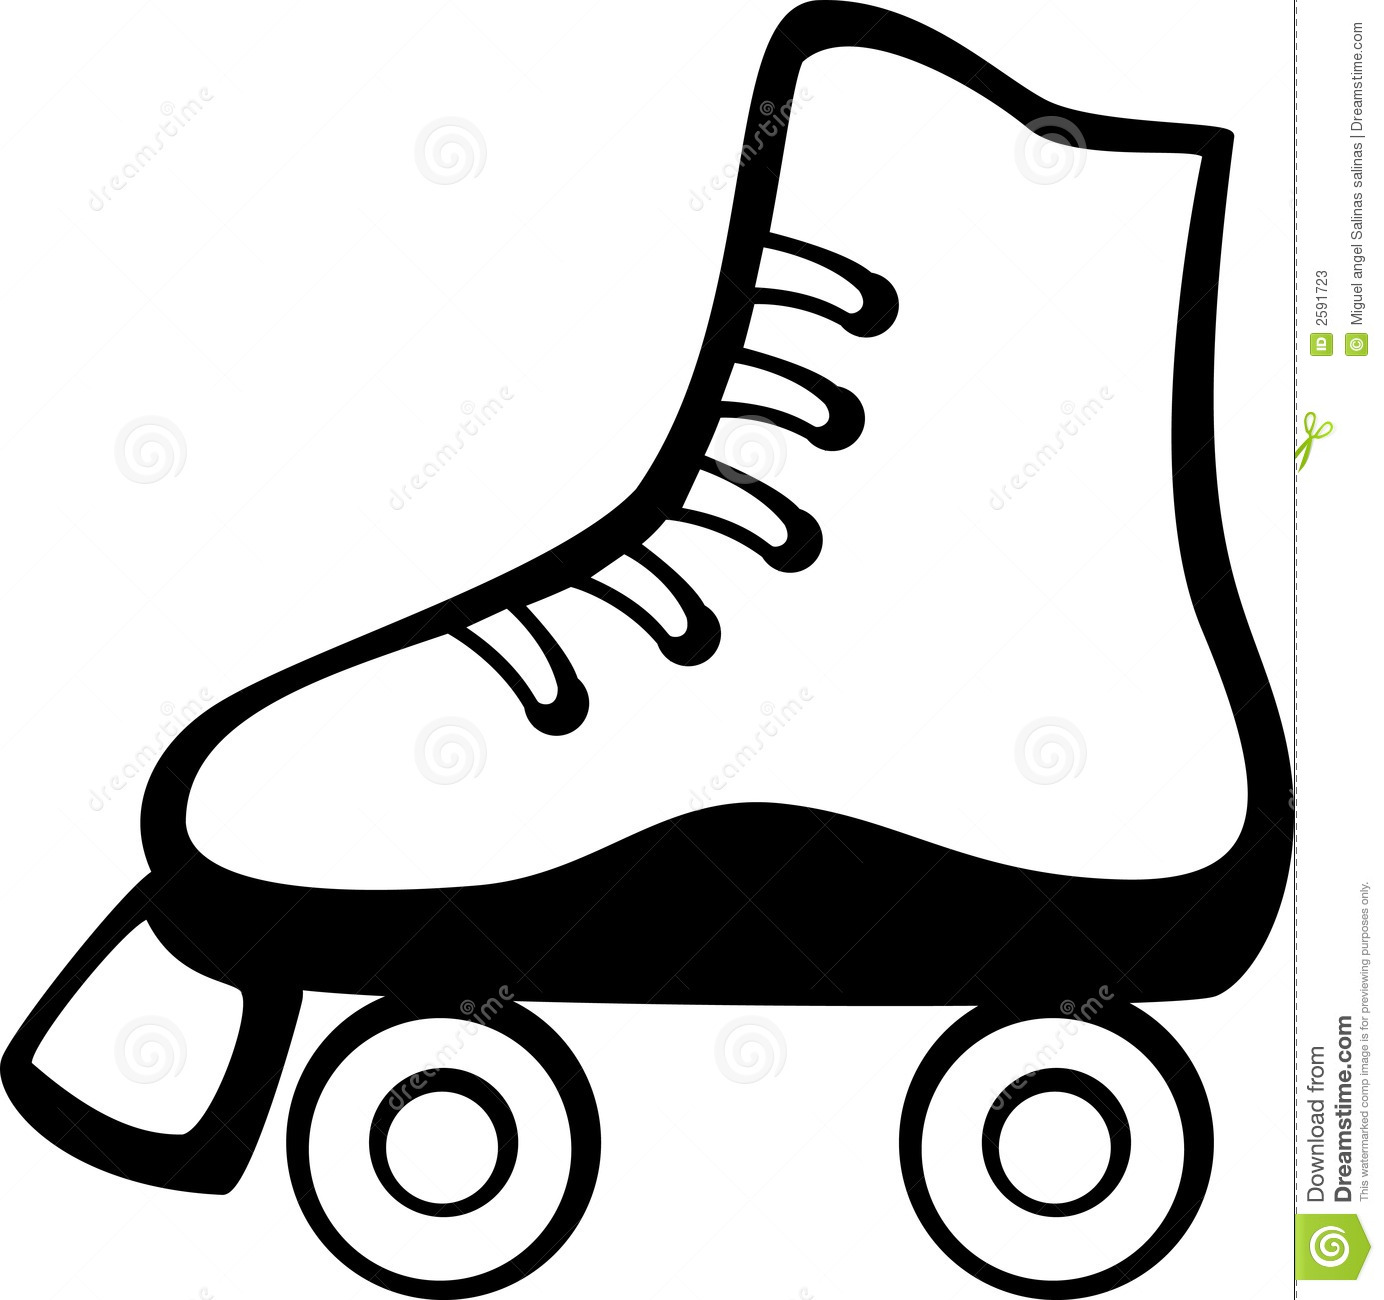 Roller 20clipart Clipart Pand - Roller Skating Clipart